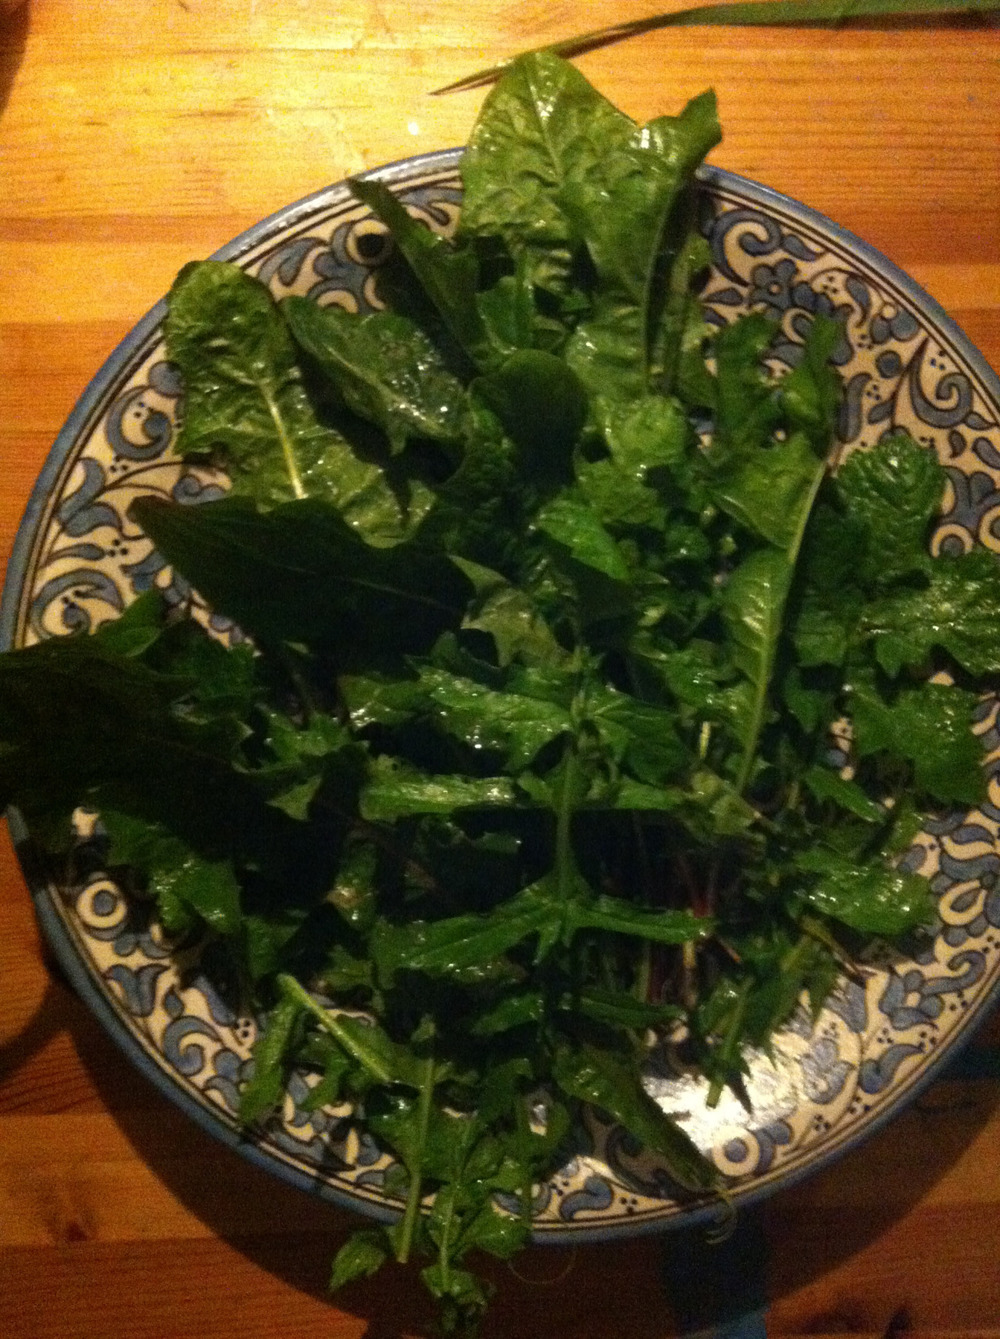 Dandelion leaves waiting to be transformed into a wild green juice. I will sweeten with a couple of apples and maybe add a little ginger.